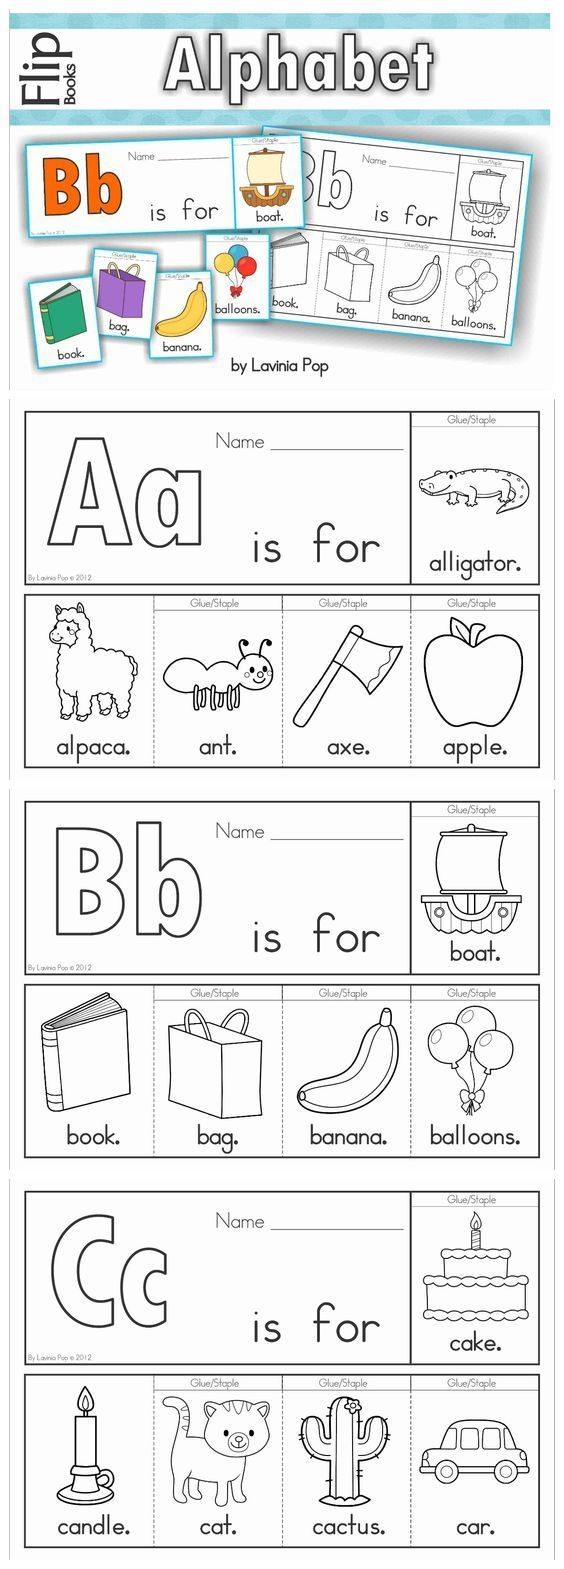 Online homeschooling high school, #AmericanOnlineMiddleSchool Online high school courses #Alphabet #Flip #Books to introduce beginning #sounds (color and #black & white). Fantastic paper saving idea - a little booklet made from just one #piece of paper!